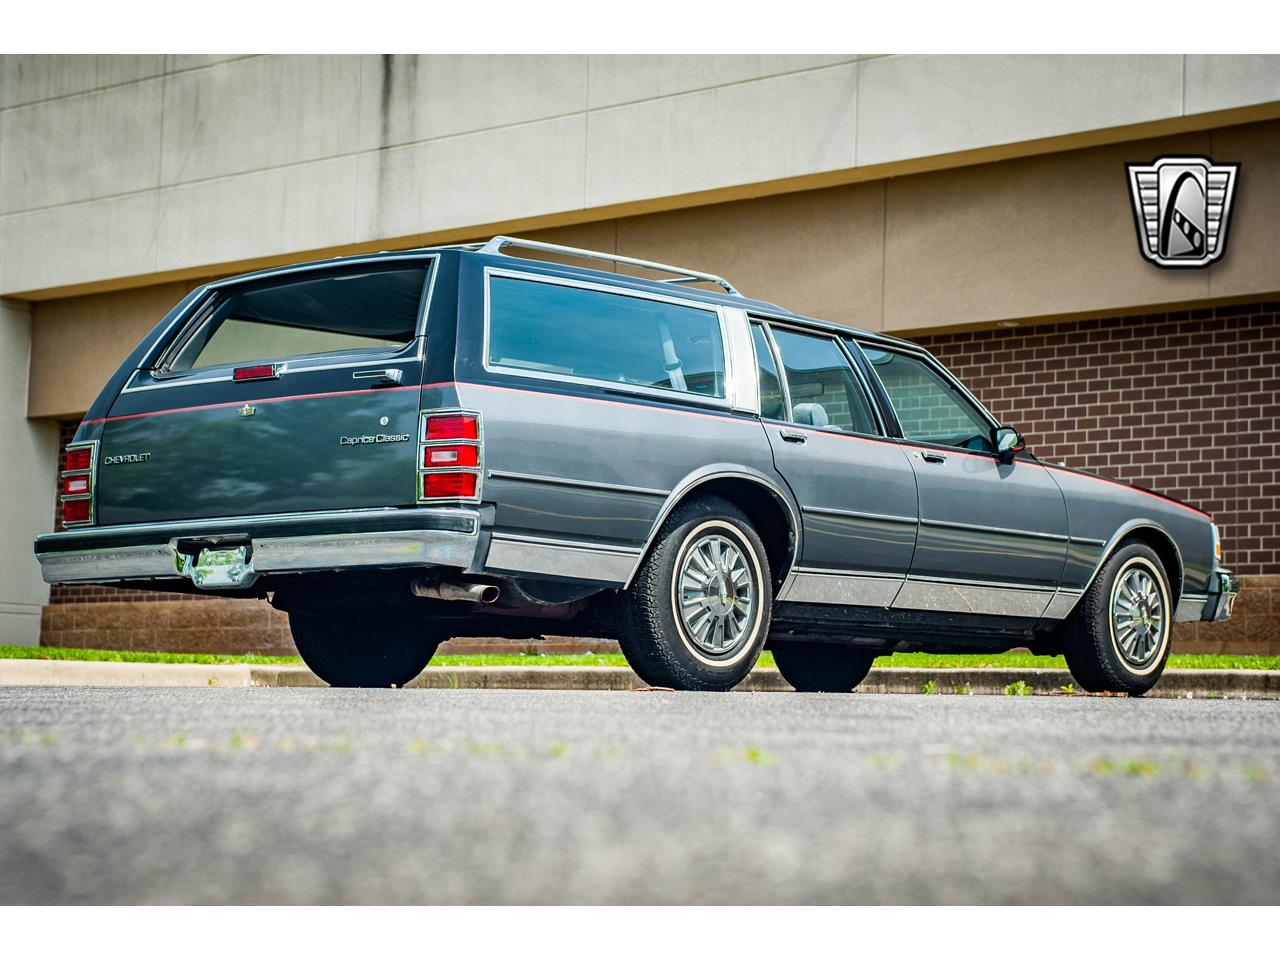 Large Picture of '89 Caprice located in O'Fallon Illinois Offered by Gateway Classic Cars - St. Louis - QB9K